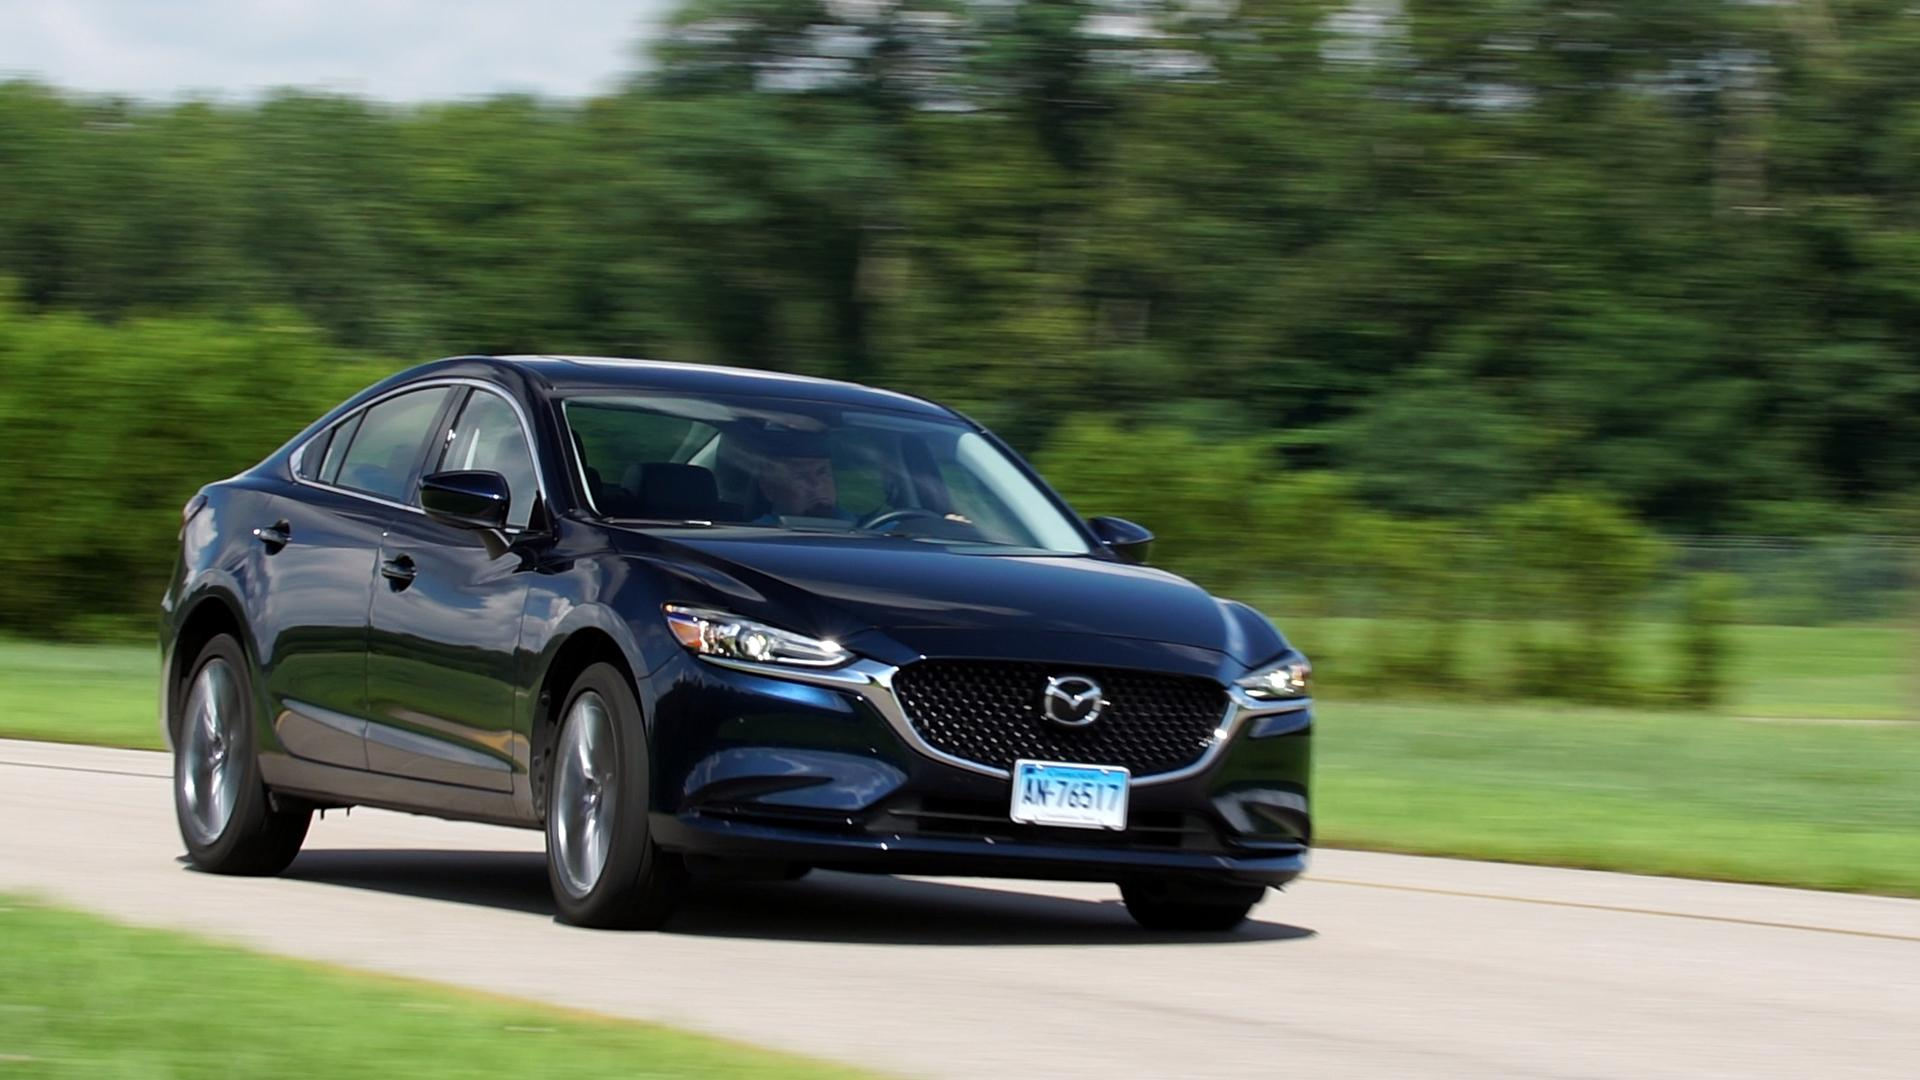 2018 Mazda 6 Reviews Ratings Prices Consumer Reports 2009 Fuel Filter